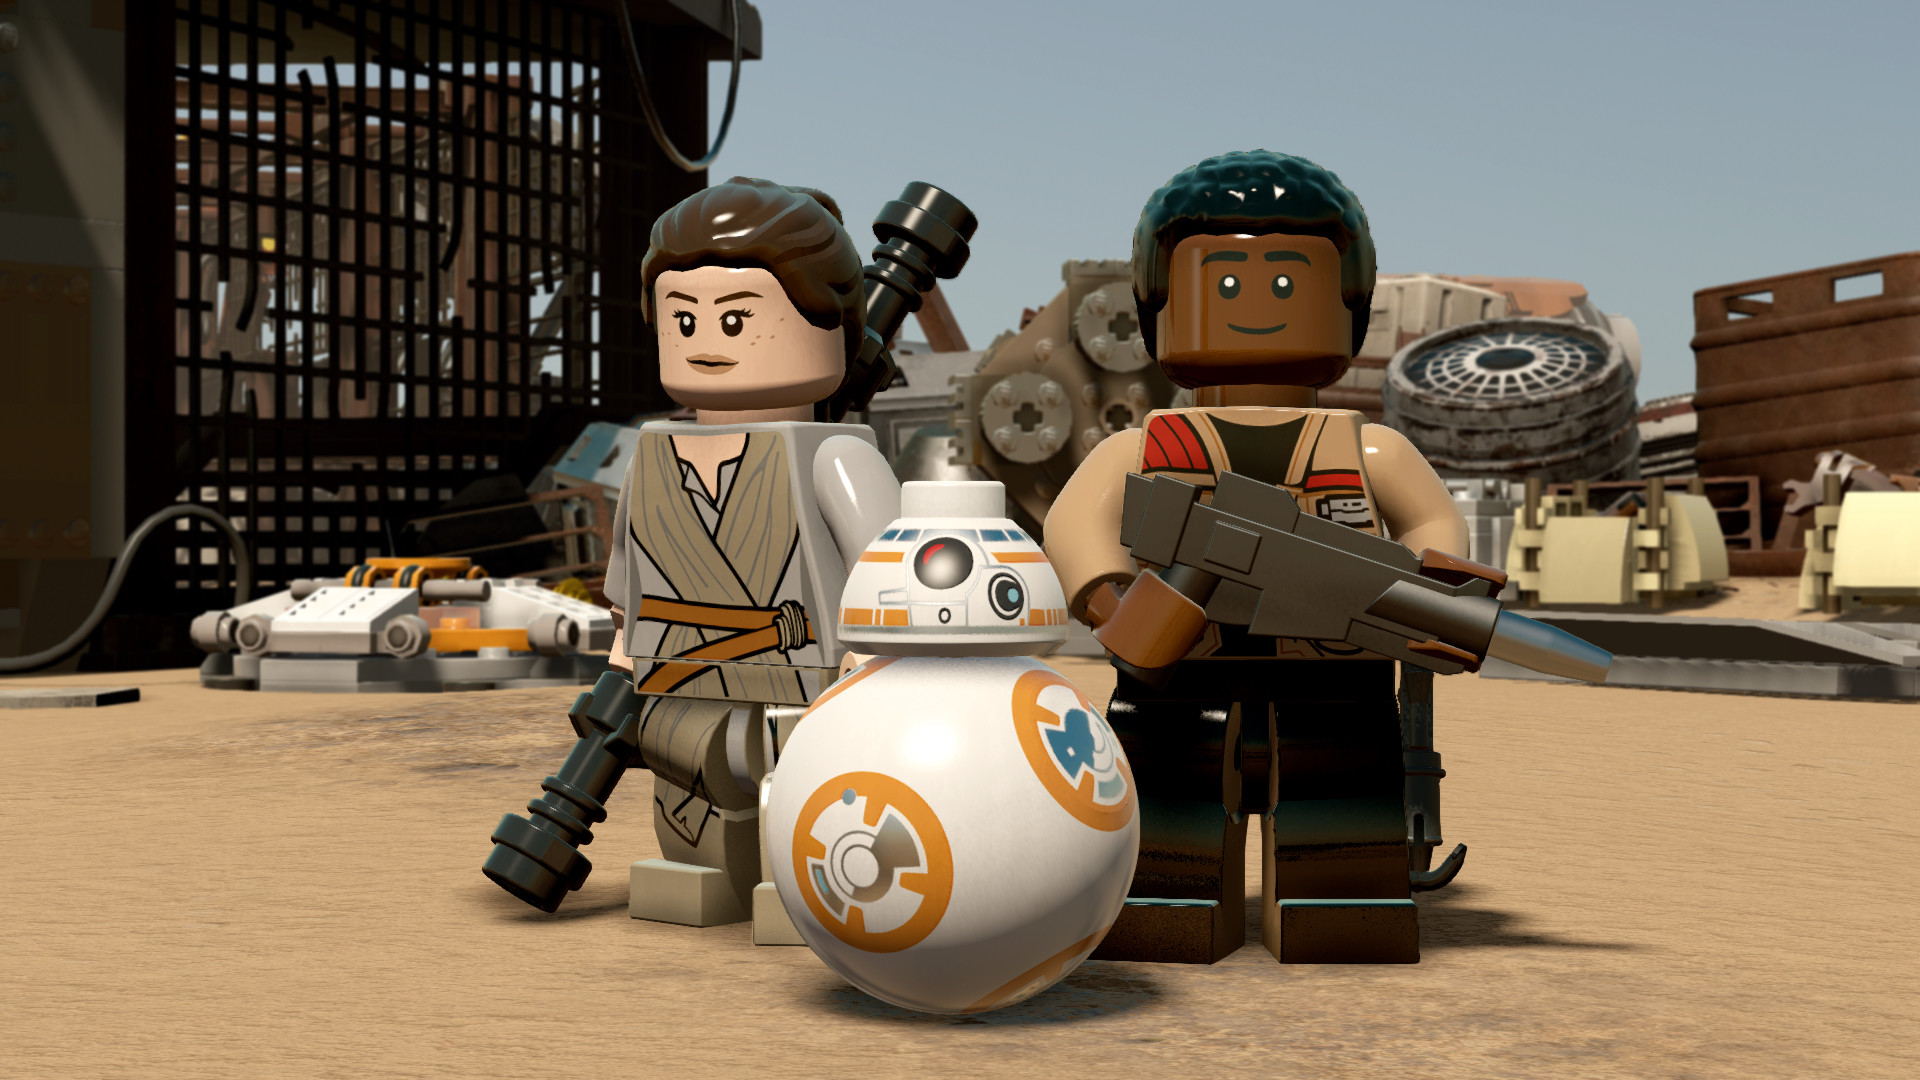 Image of LEGO STAR WARS The Force Awakens Repack PC Game Full Version Free Download